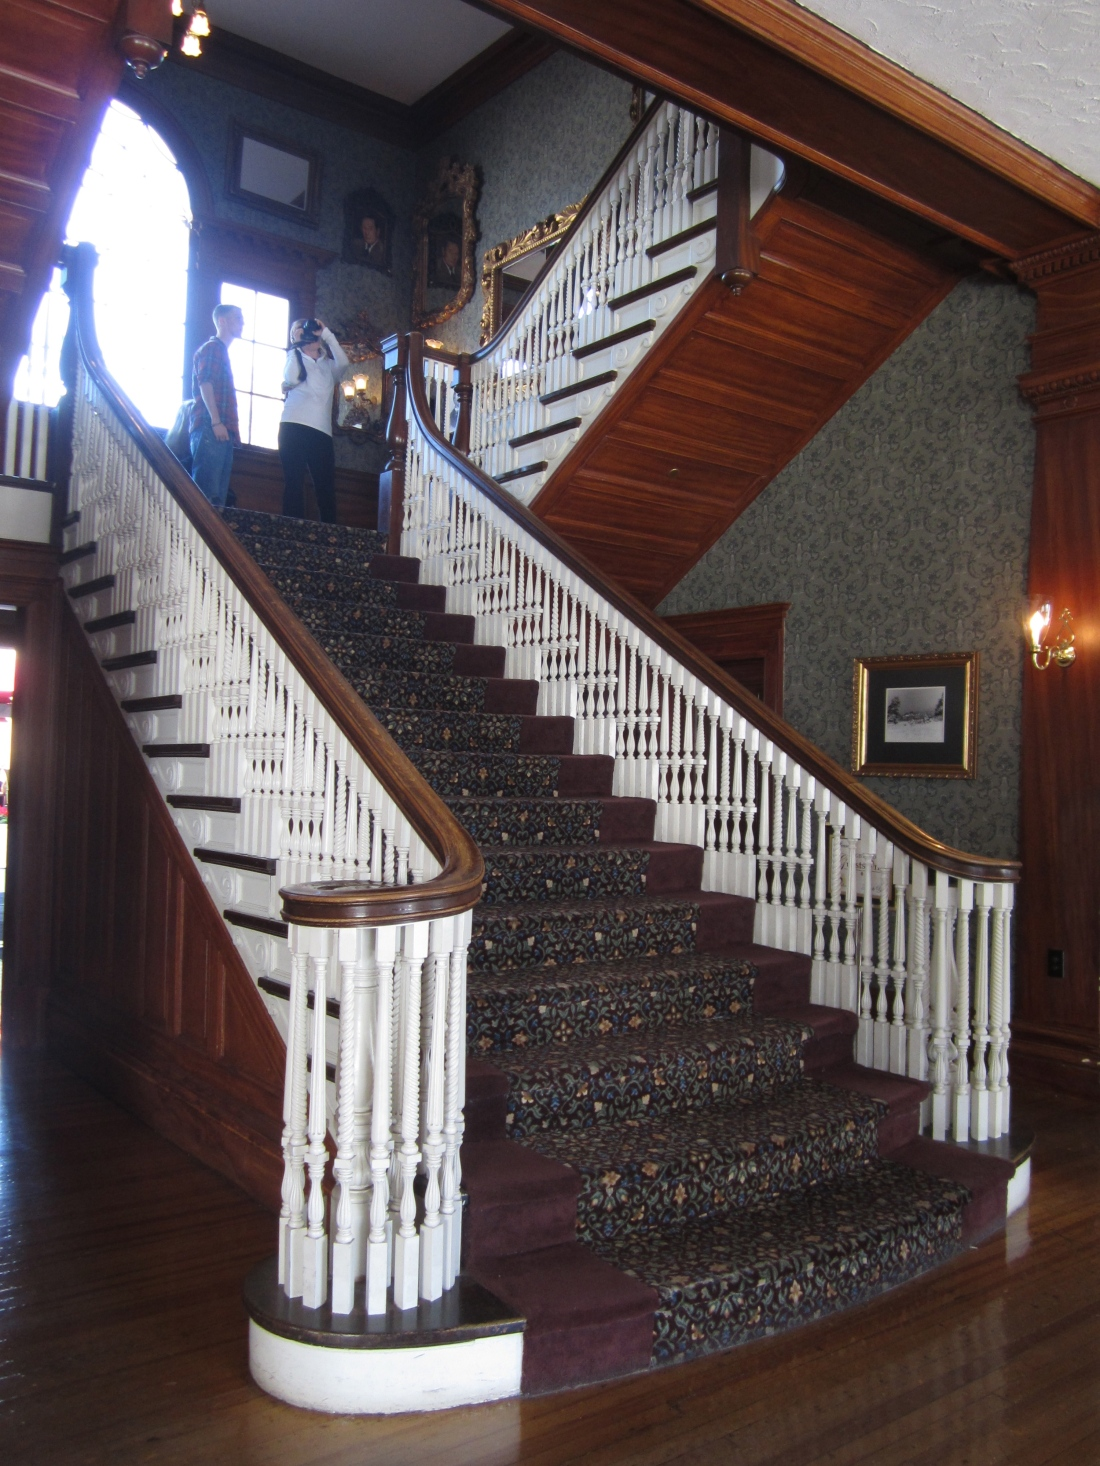 The Stanley staircase